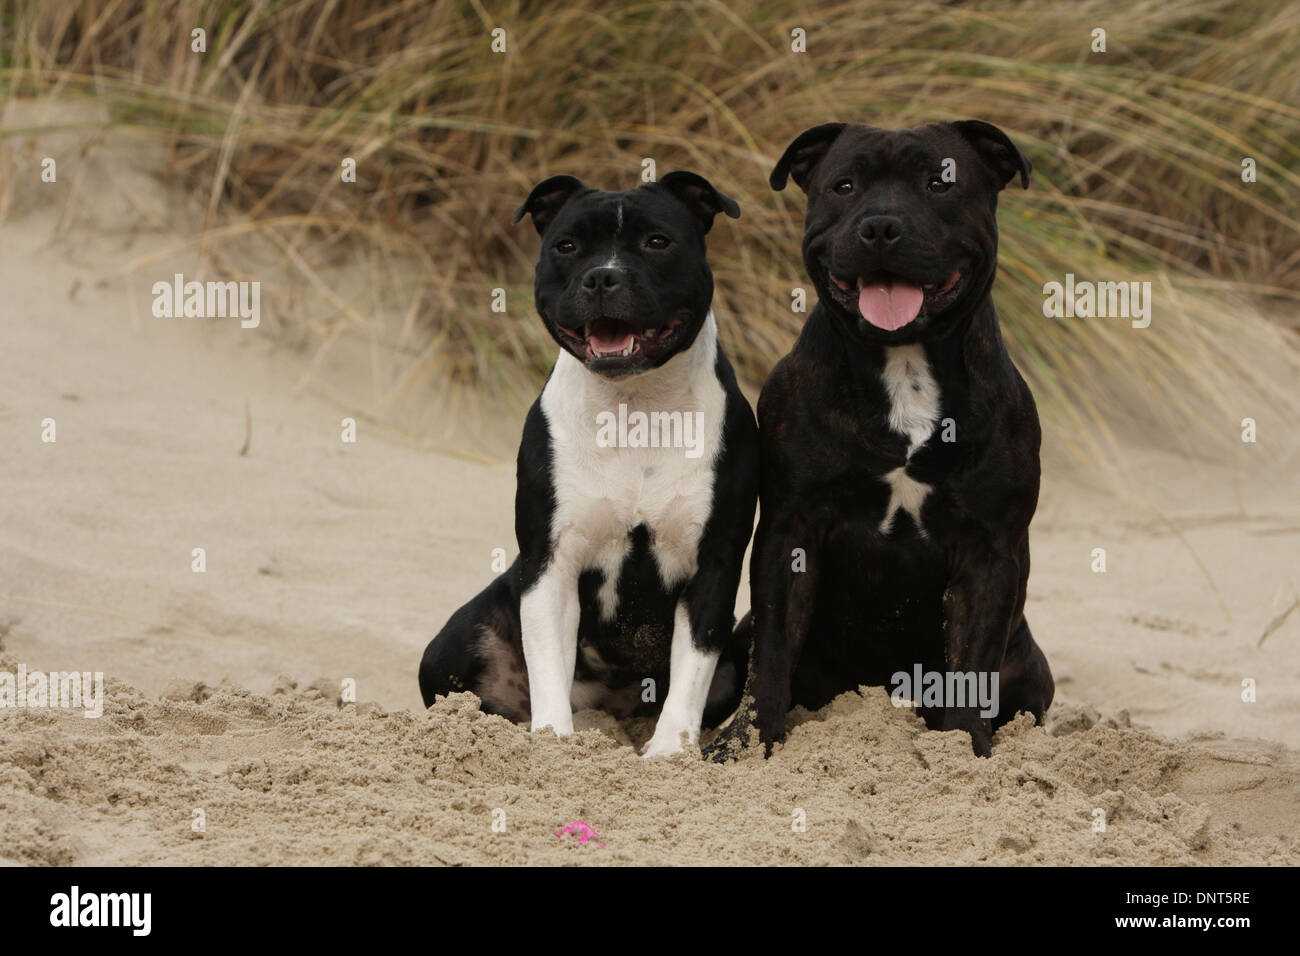 dog Staffordshire Bull Terrier / Staffie  two adults sitting in dunes - Stock Image